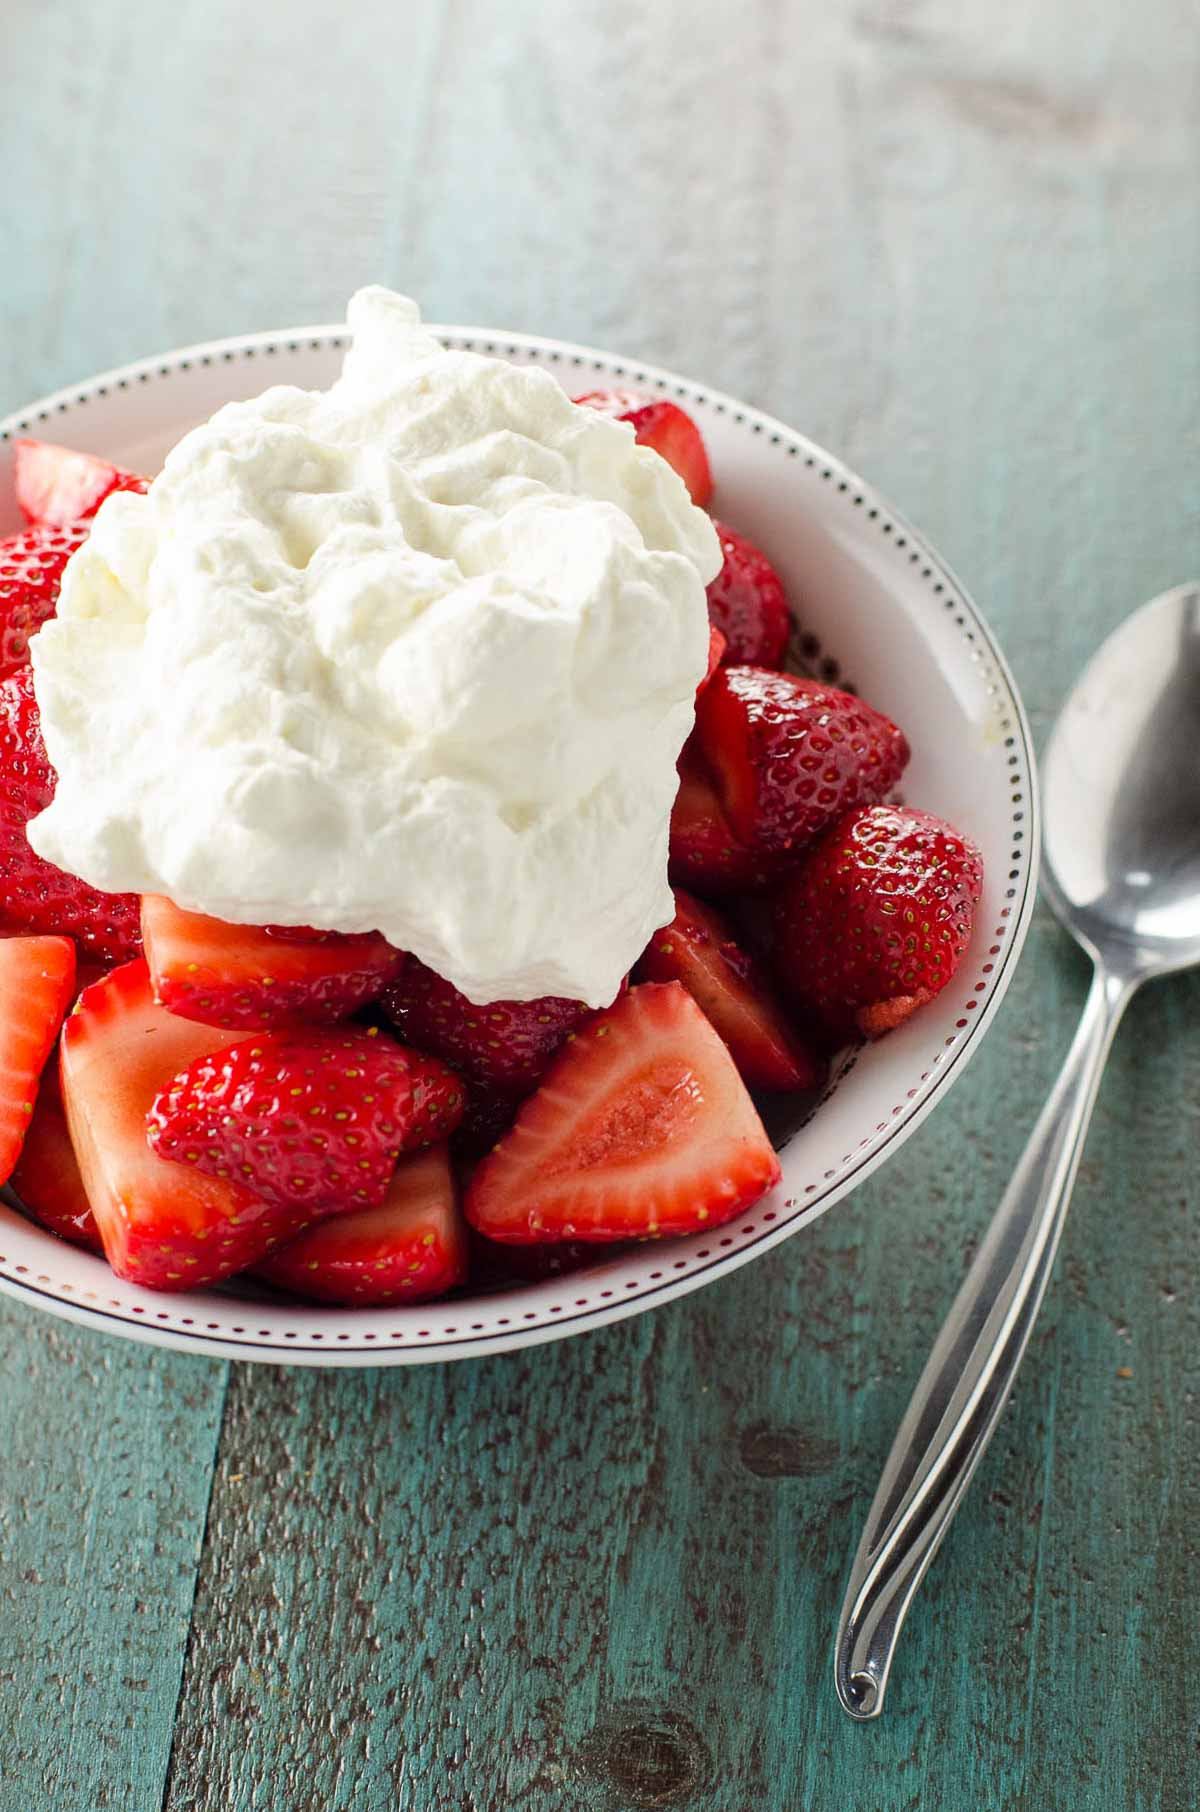 balsamic strawberries topped with whipped cream in a white bowl with a spoon on a blue background